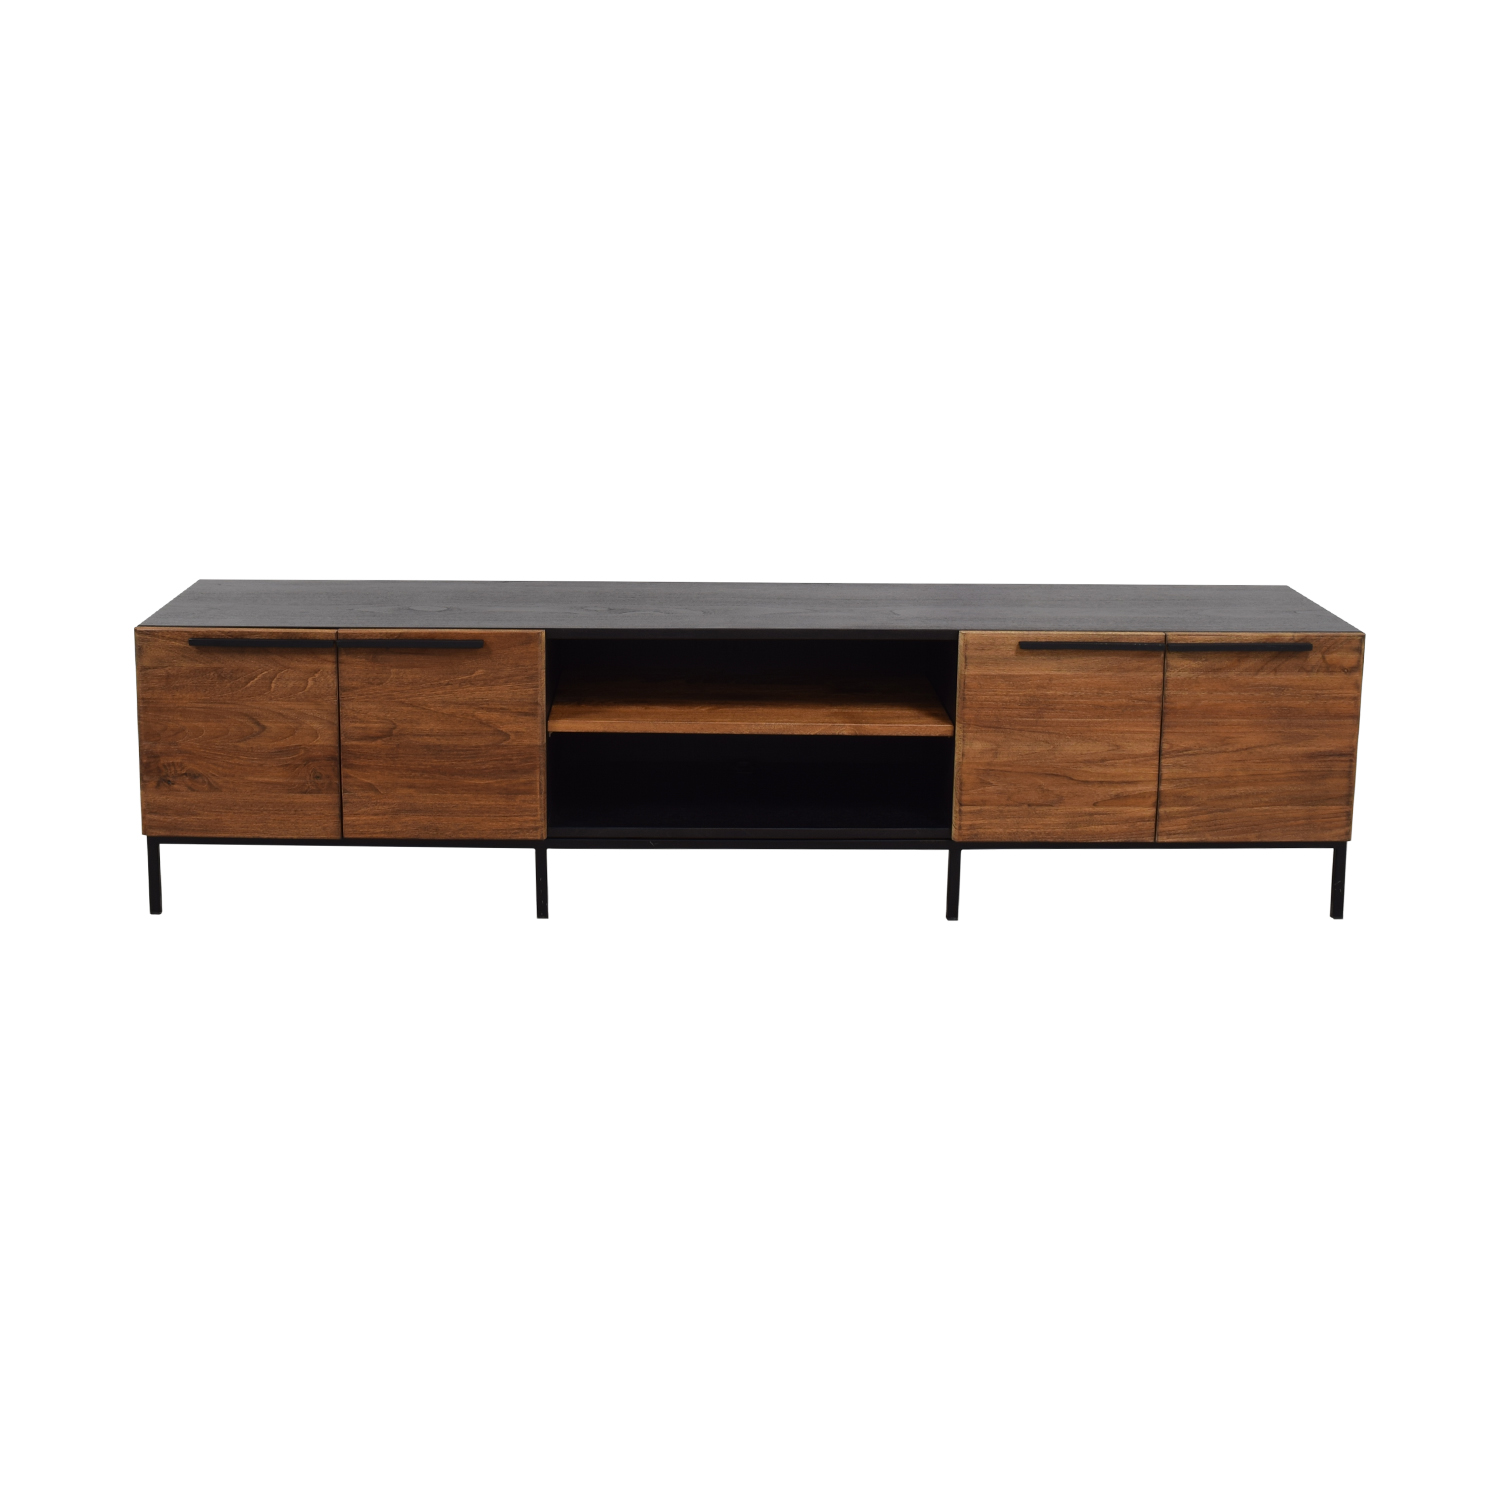 Crate & Barrel Rigby Natural Large Media Console with Base / Media Units